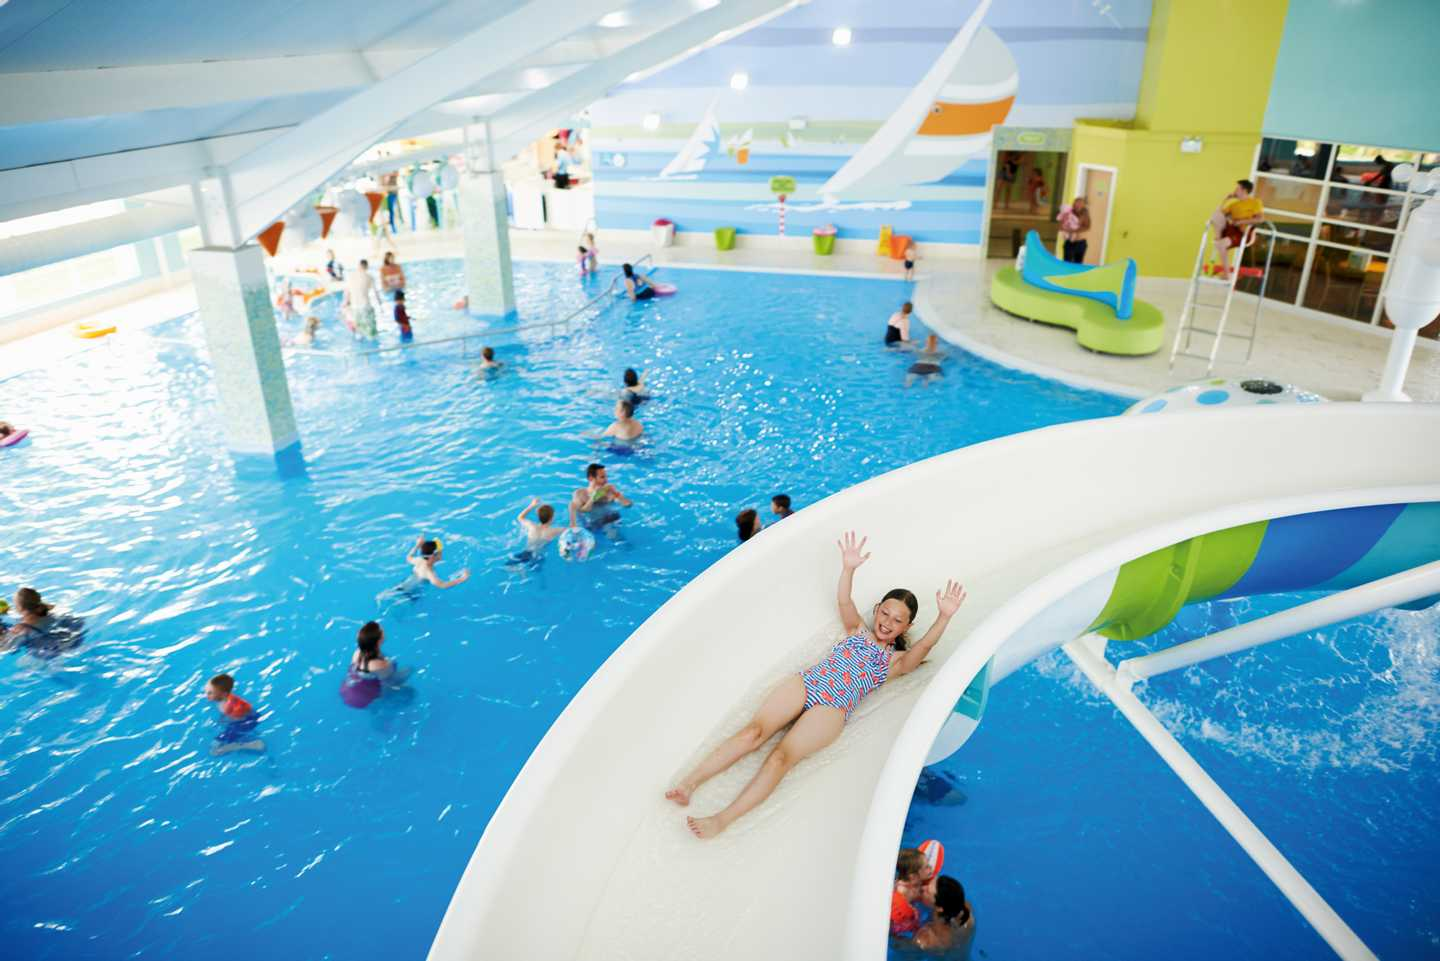 A child sliding down the water slide in the indoor pool